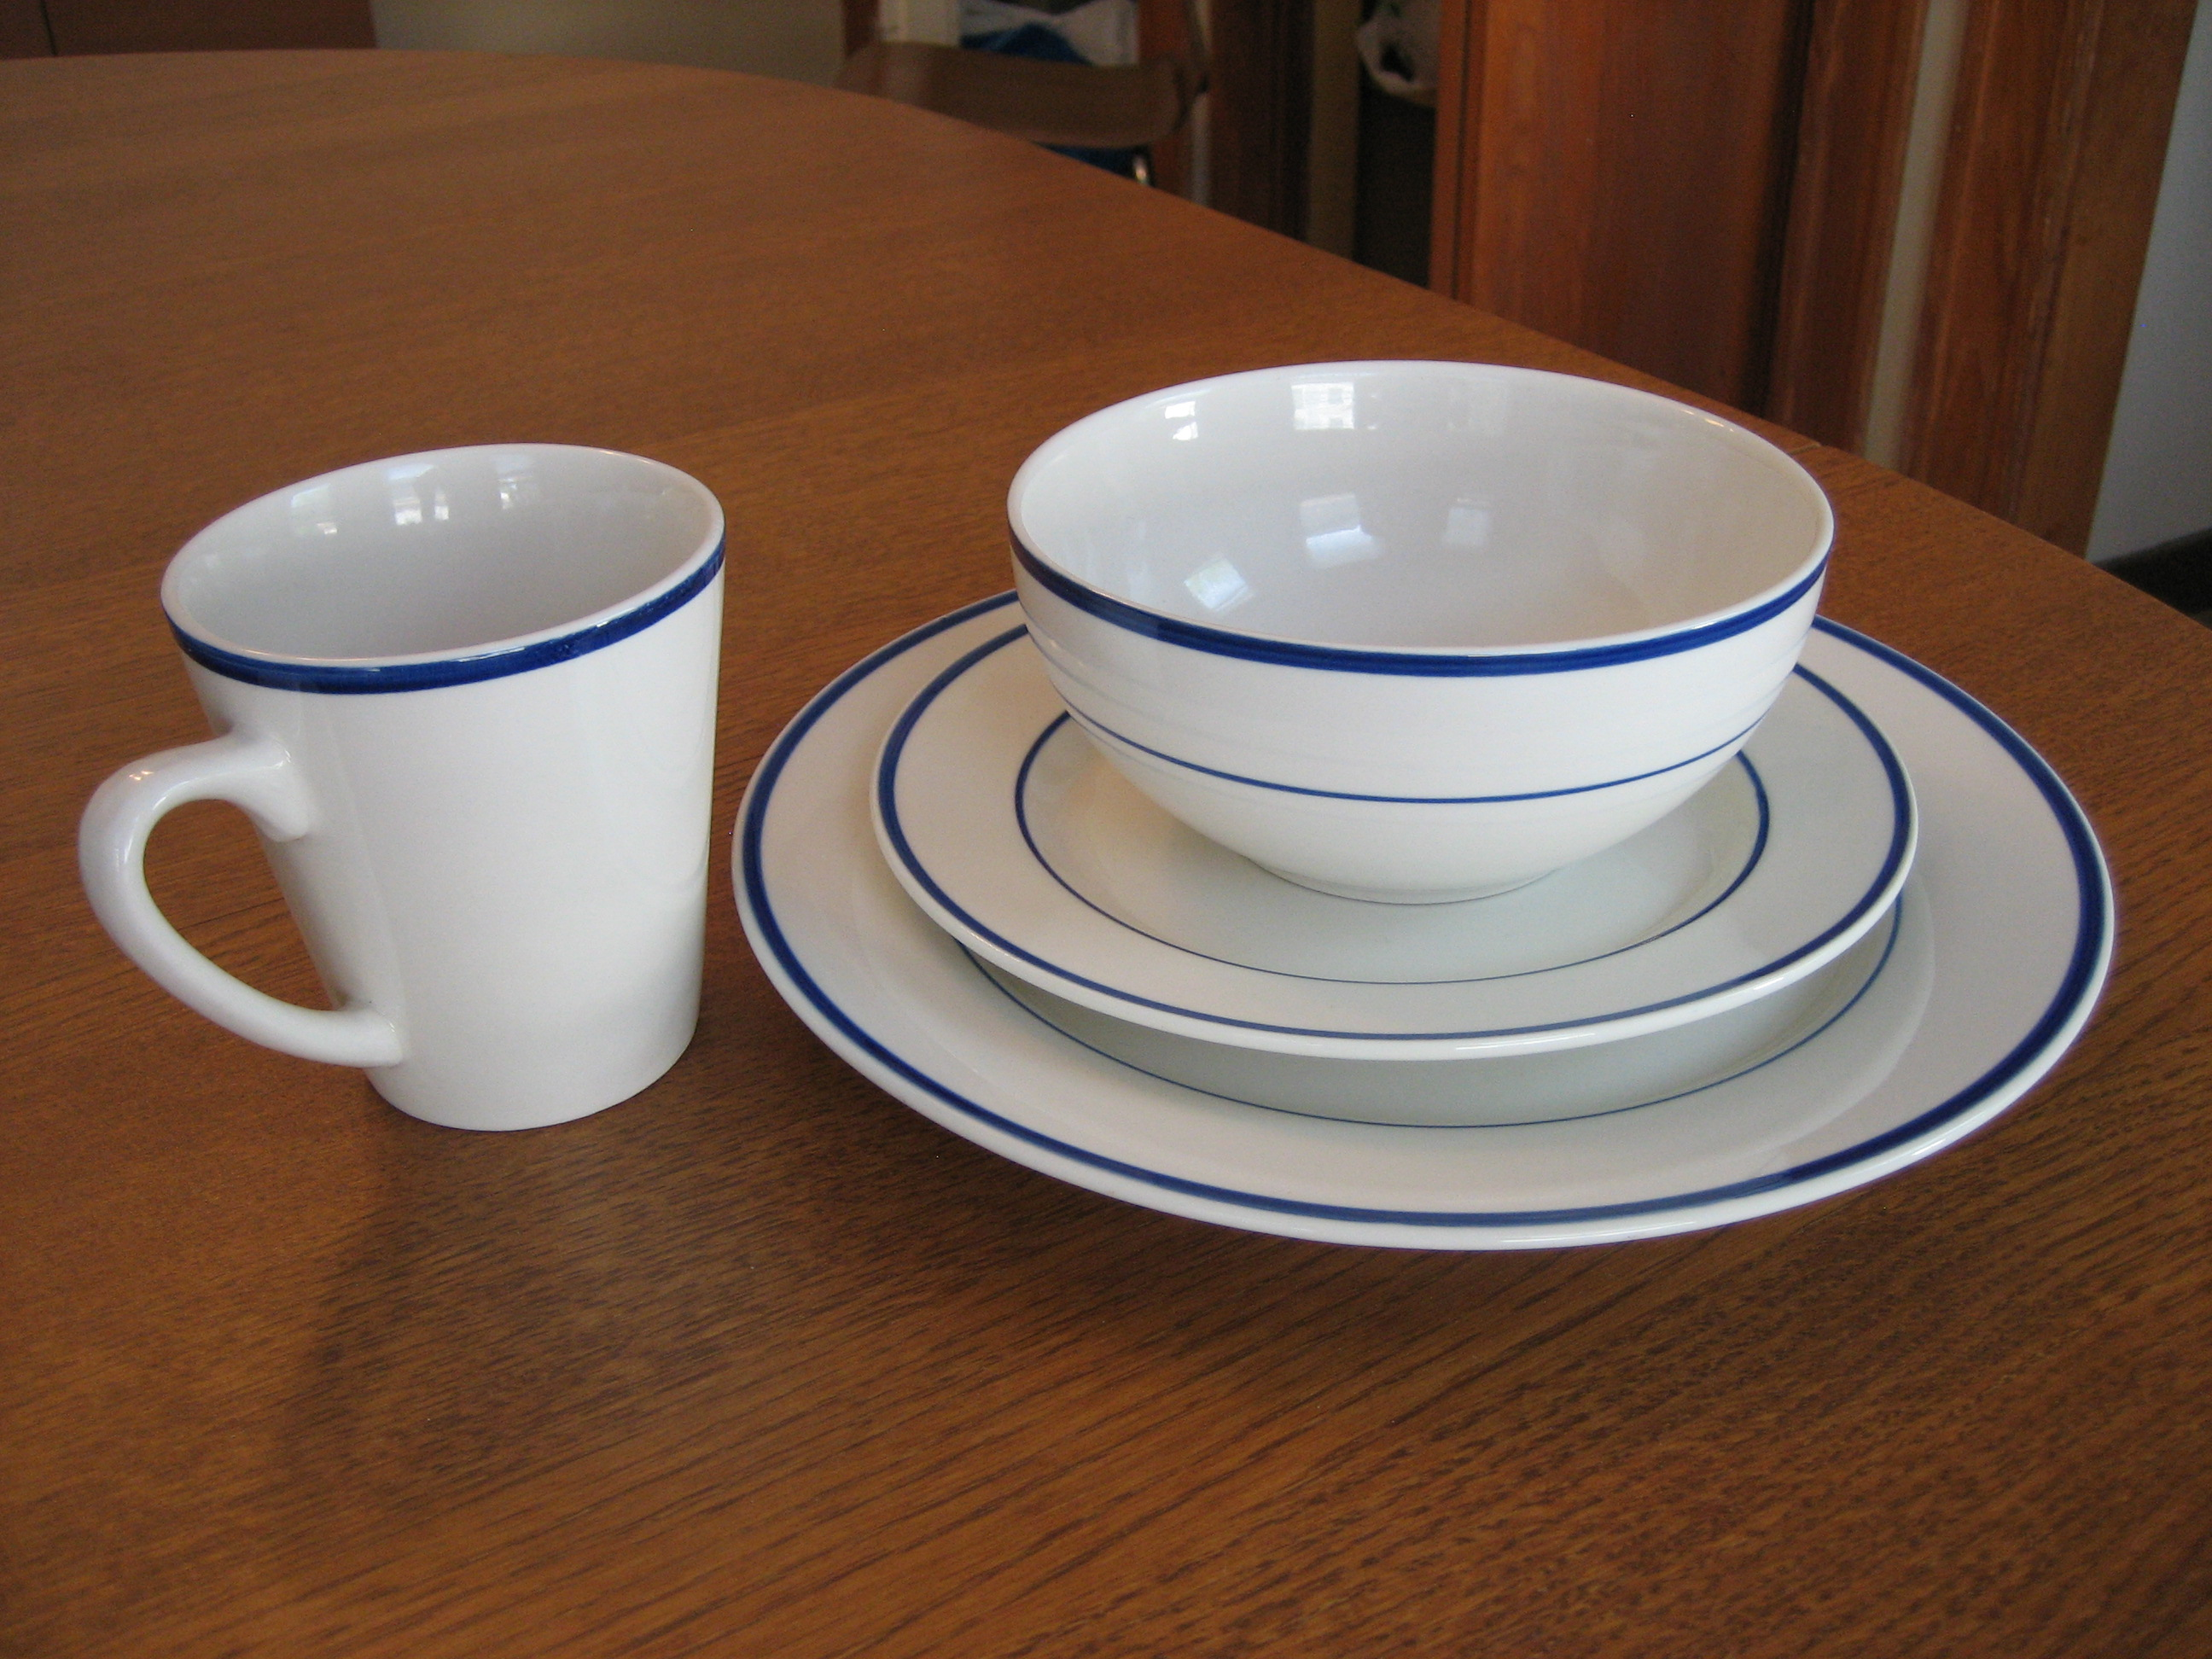 Thomson Pottery Branco-Blue: 8 pc plates, bowl and mug